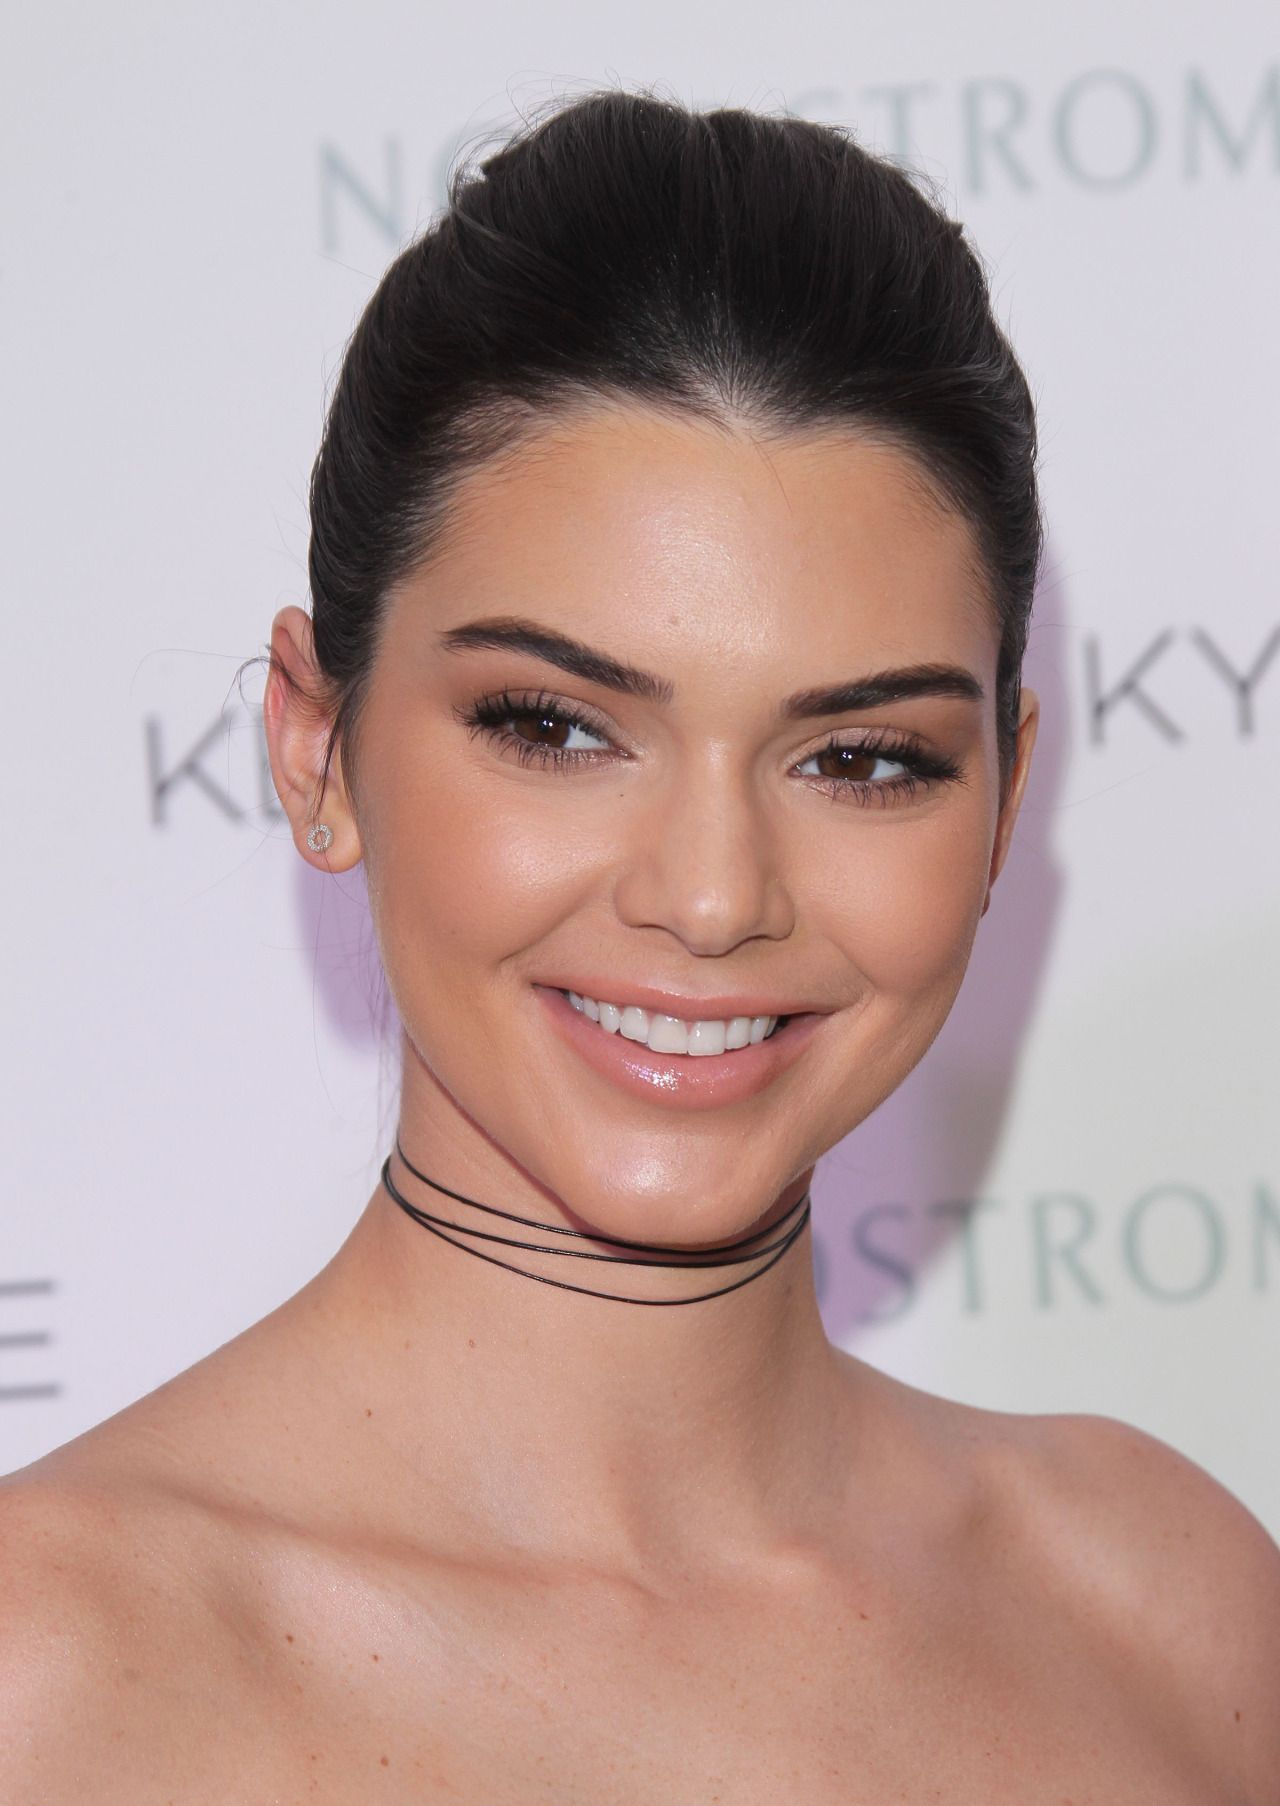 kendallnjennerfashionstyle March 24 2016 Kendall Kylie